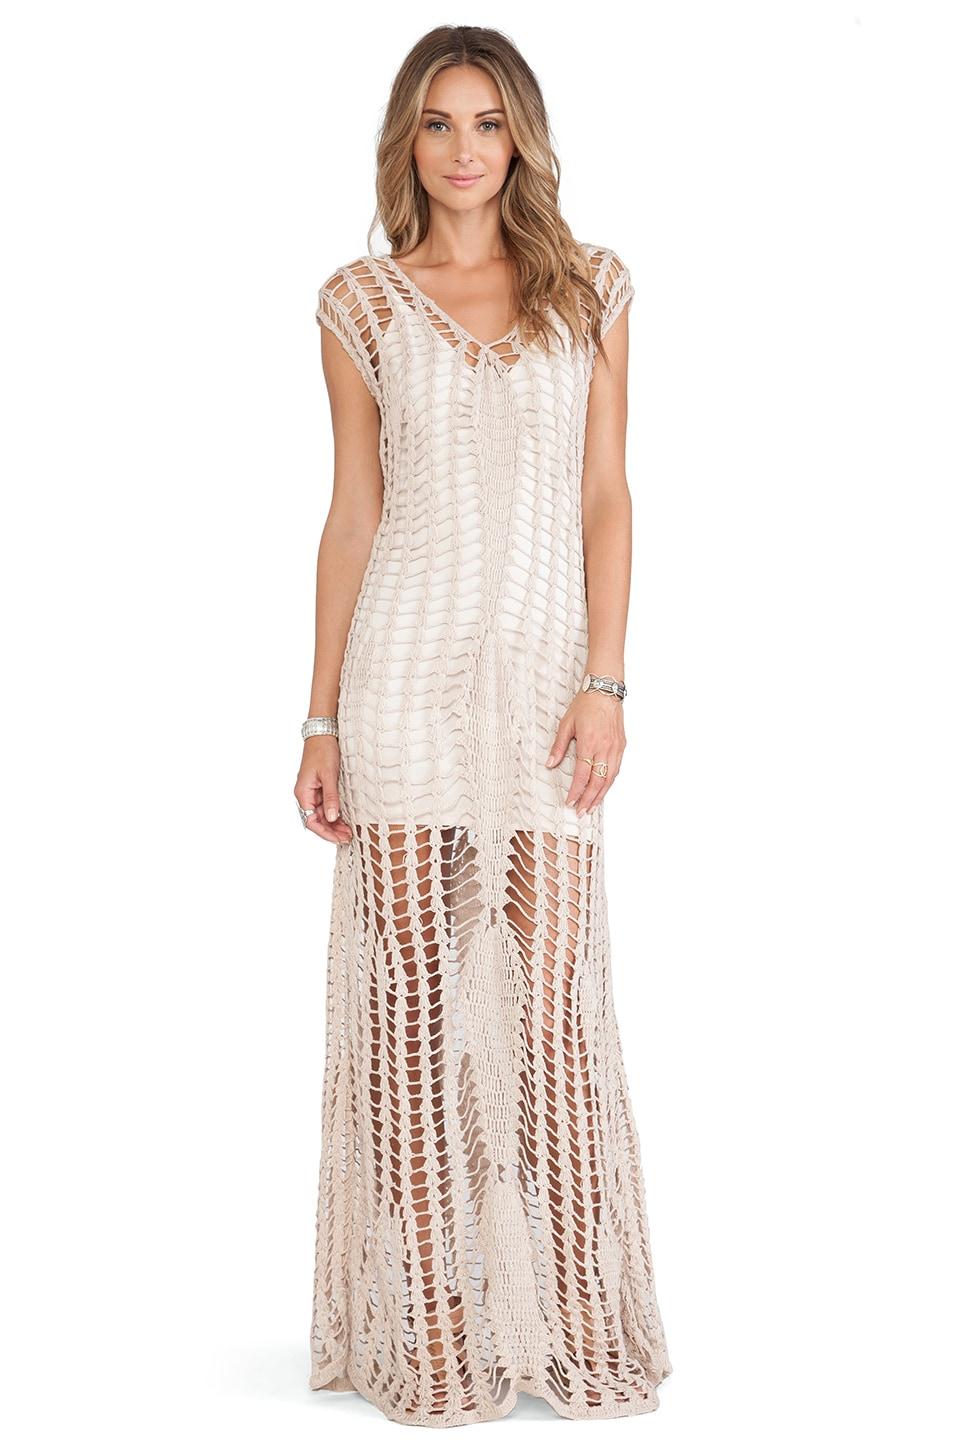 Tularosa Penelope Crochet Maxi Dress in Stone